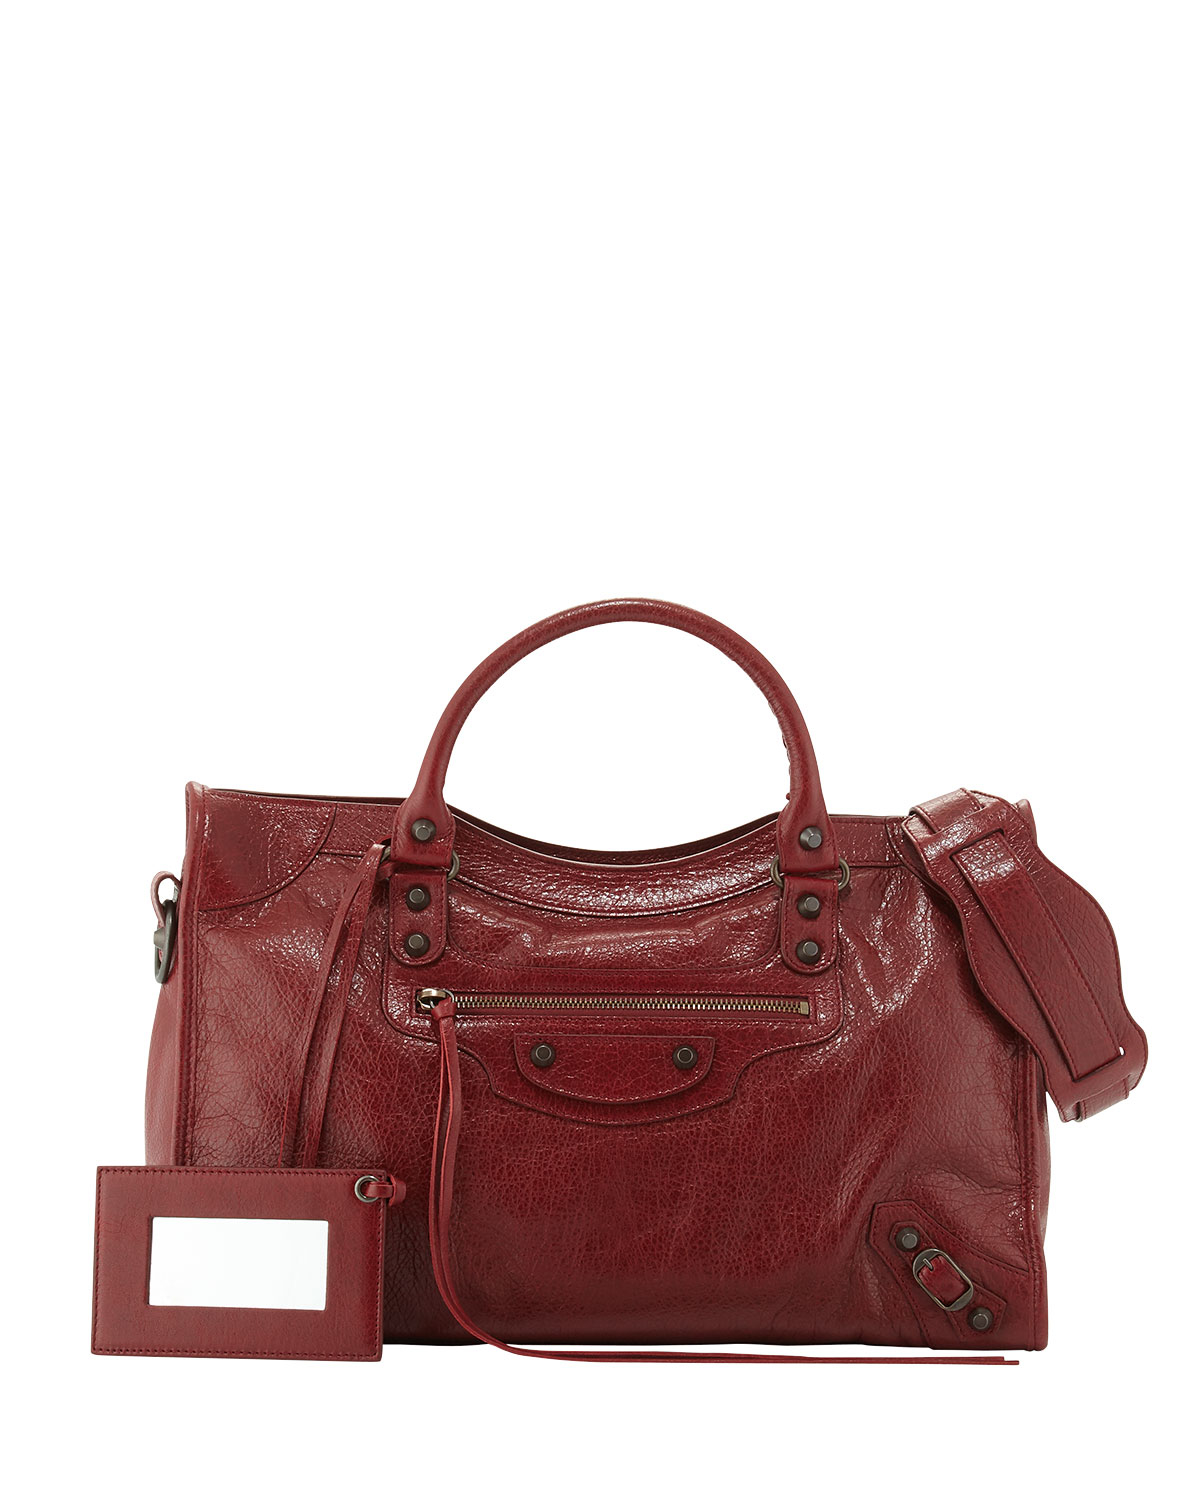 lyst balenciaga classic city lambskin tote bag in red. Black Bedroom Furniture Sets. Home Design Ideas